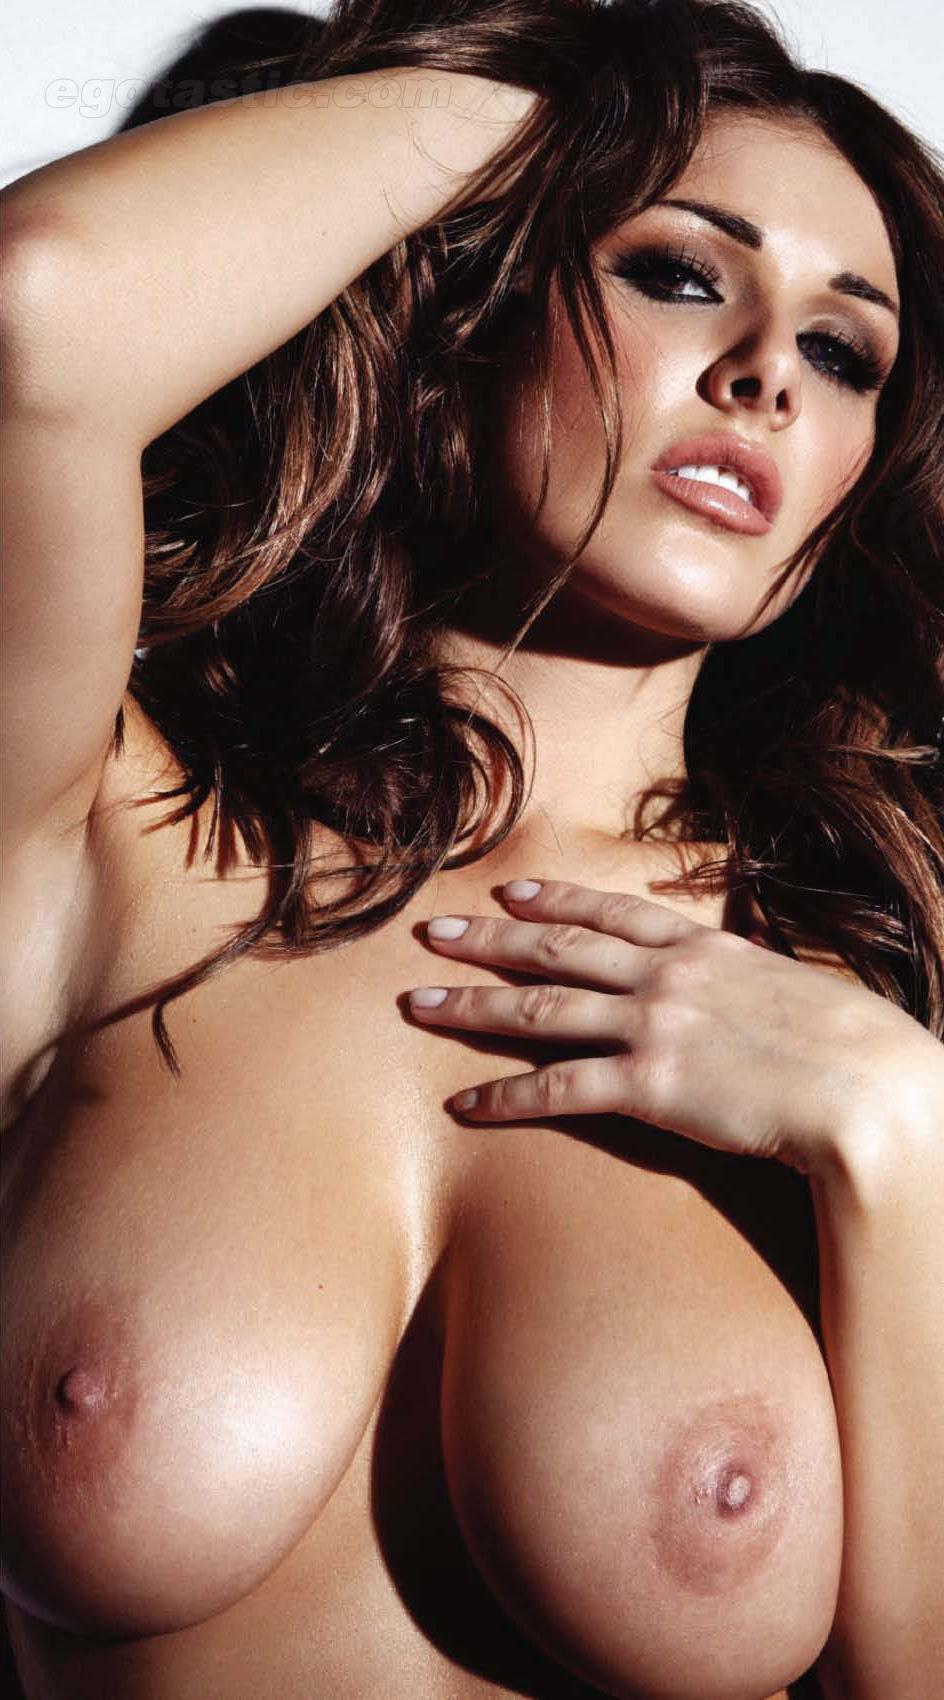 Celebrity with big boobs and sexy pussy apologise, but